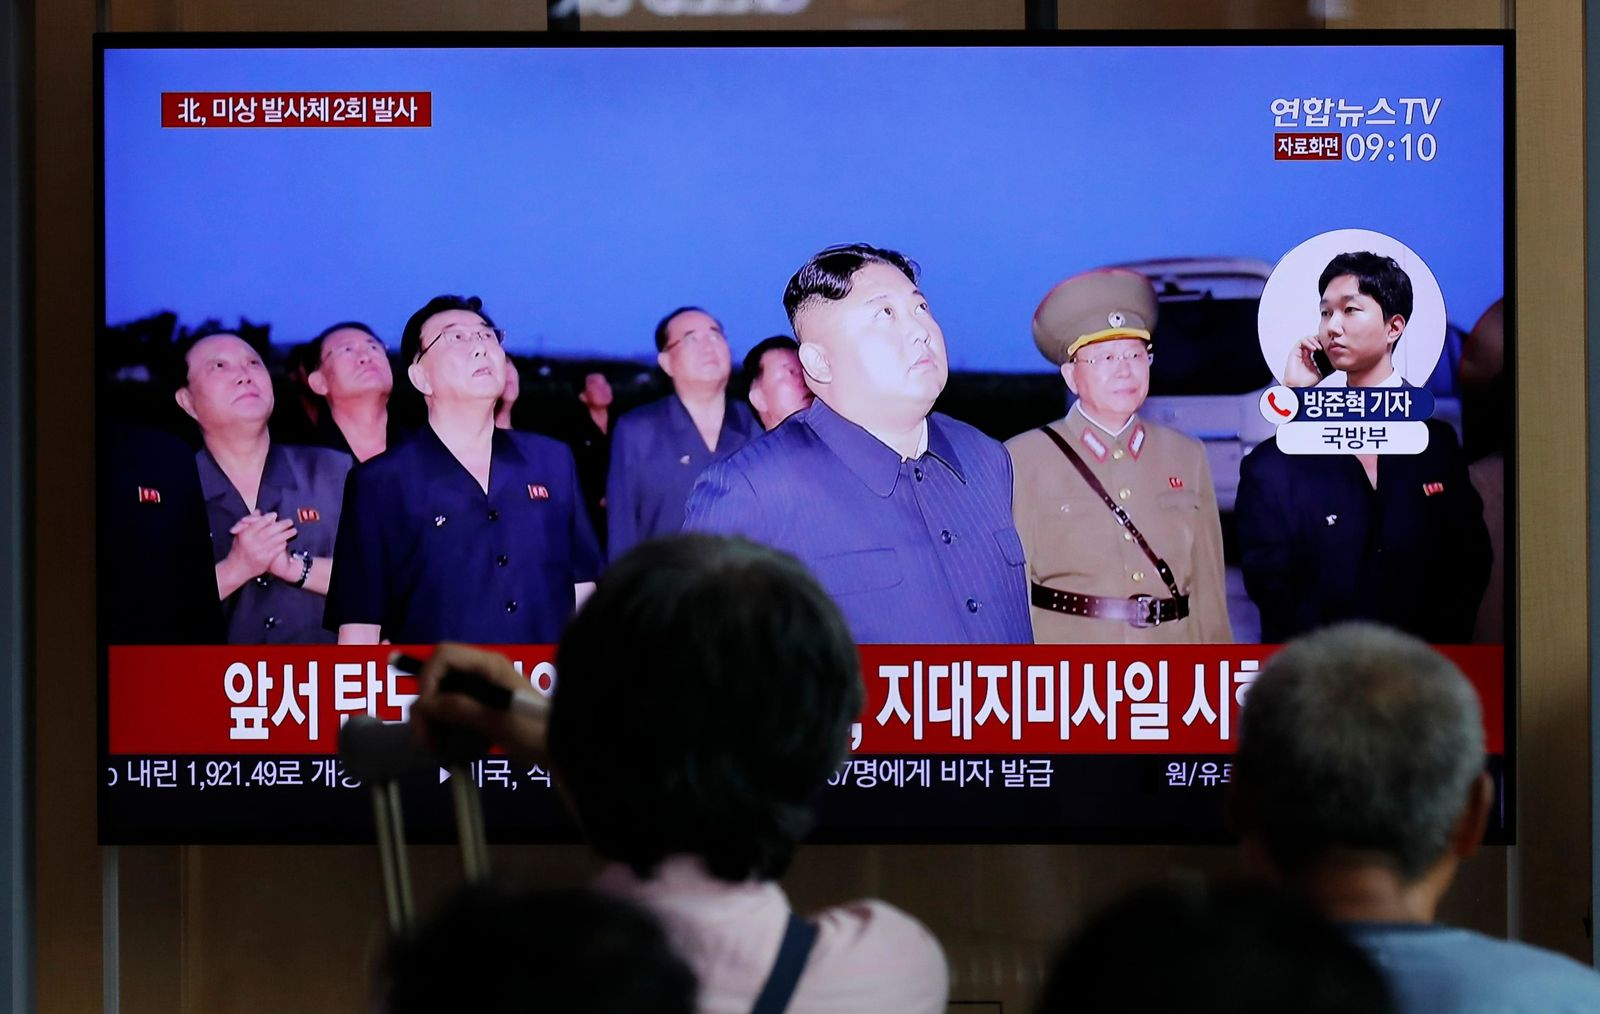 People watch a TV news program reporting about North Korea's firing projectiles with a file image of North Korean leader Kim Jong Un at the Seoul Railway Station in Seoul, South Korea, Friday, Aug. 16, 2019. AP Photo/Lee Jin-man)